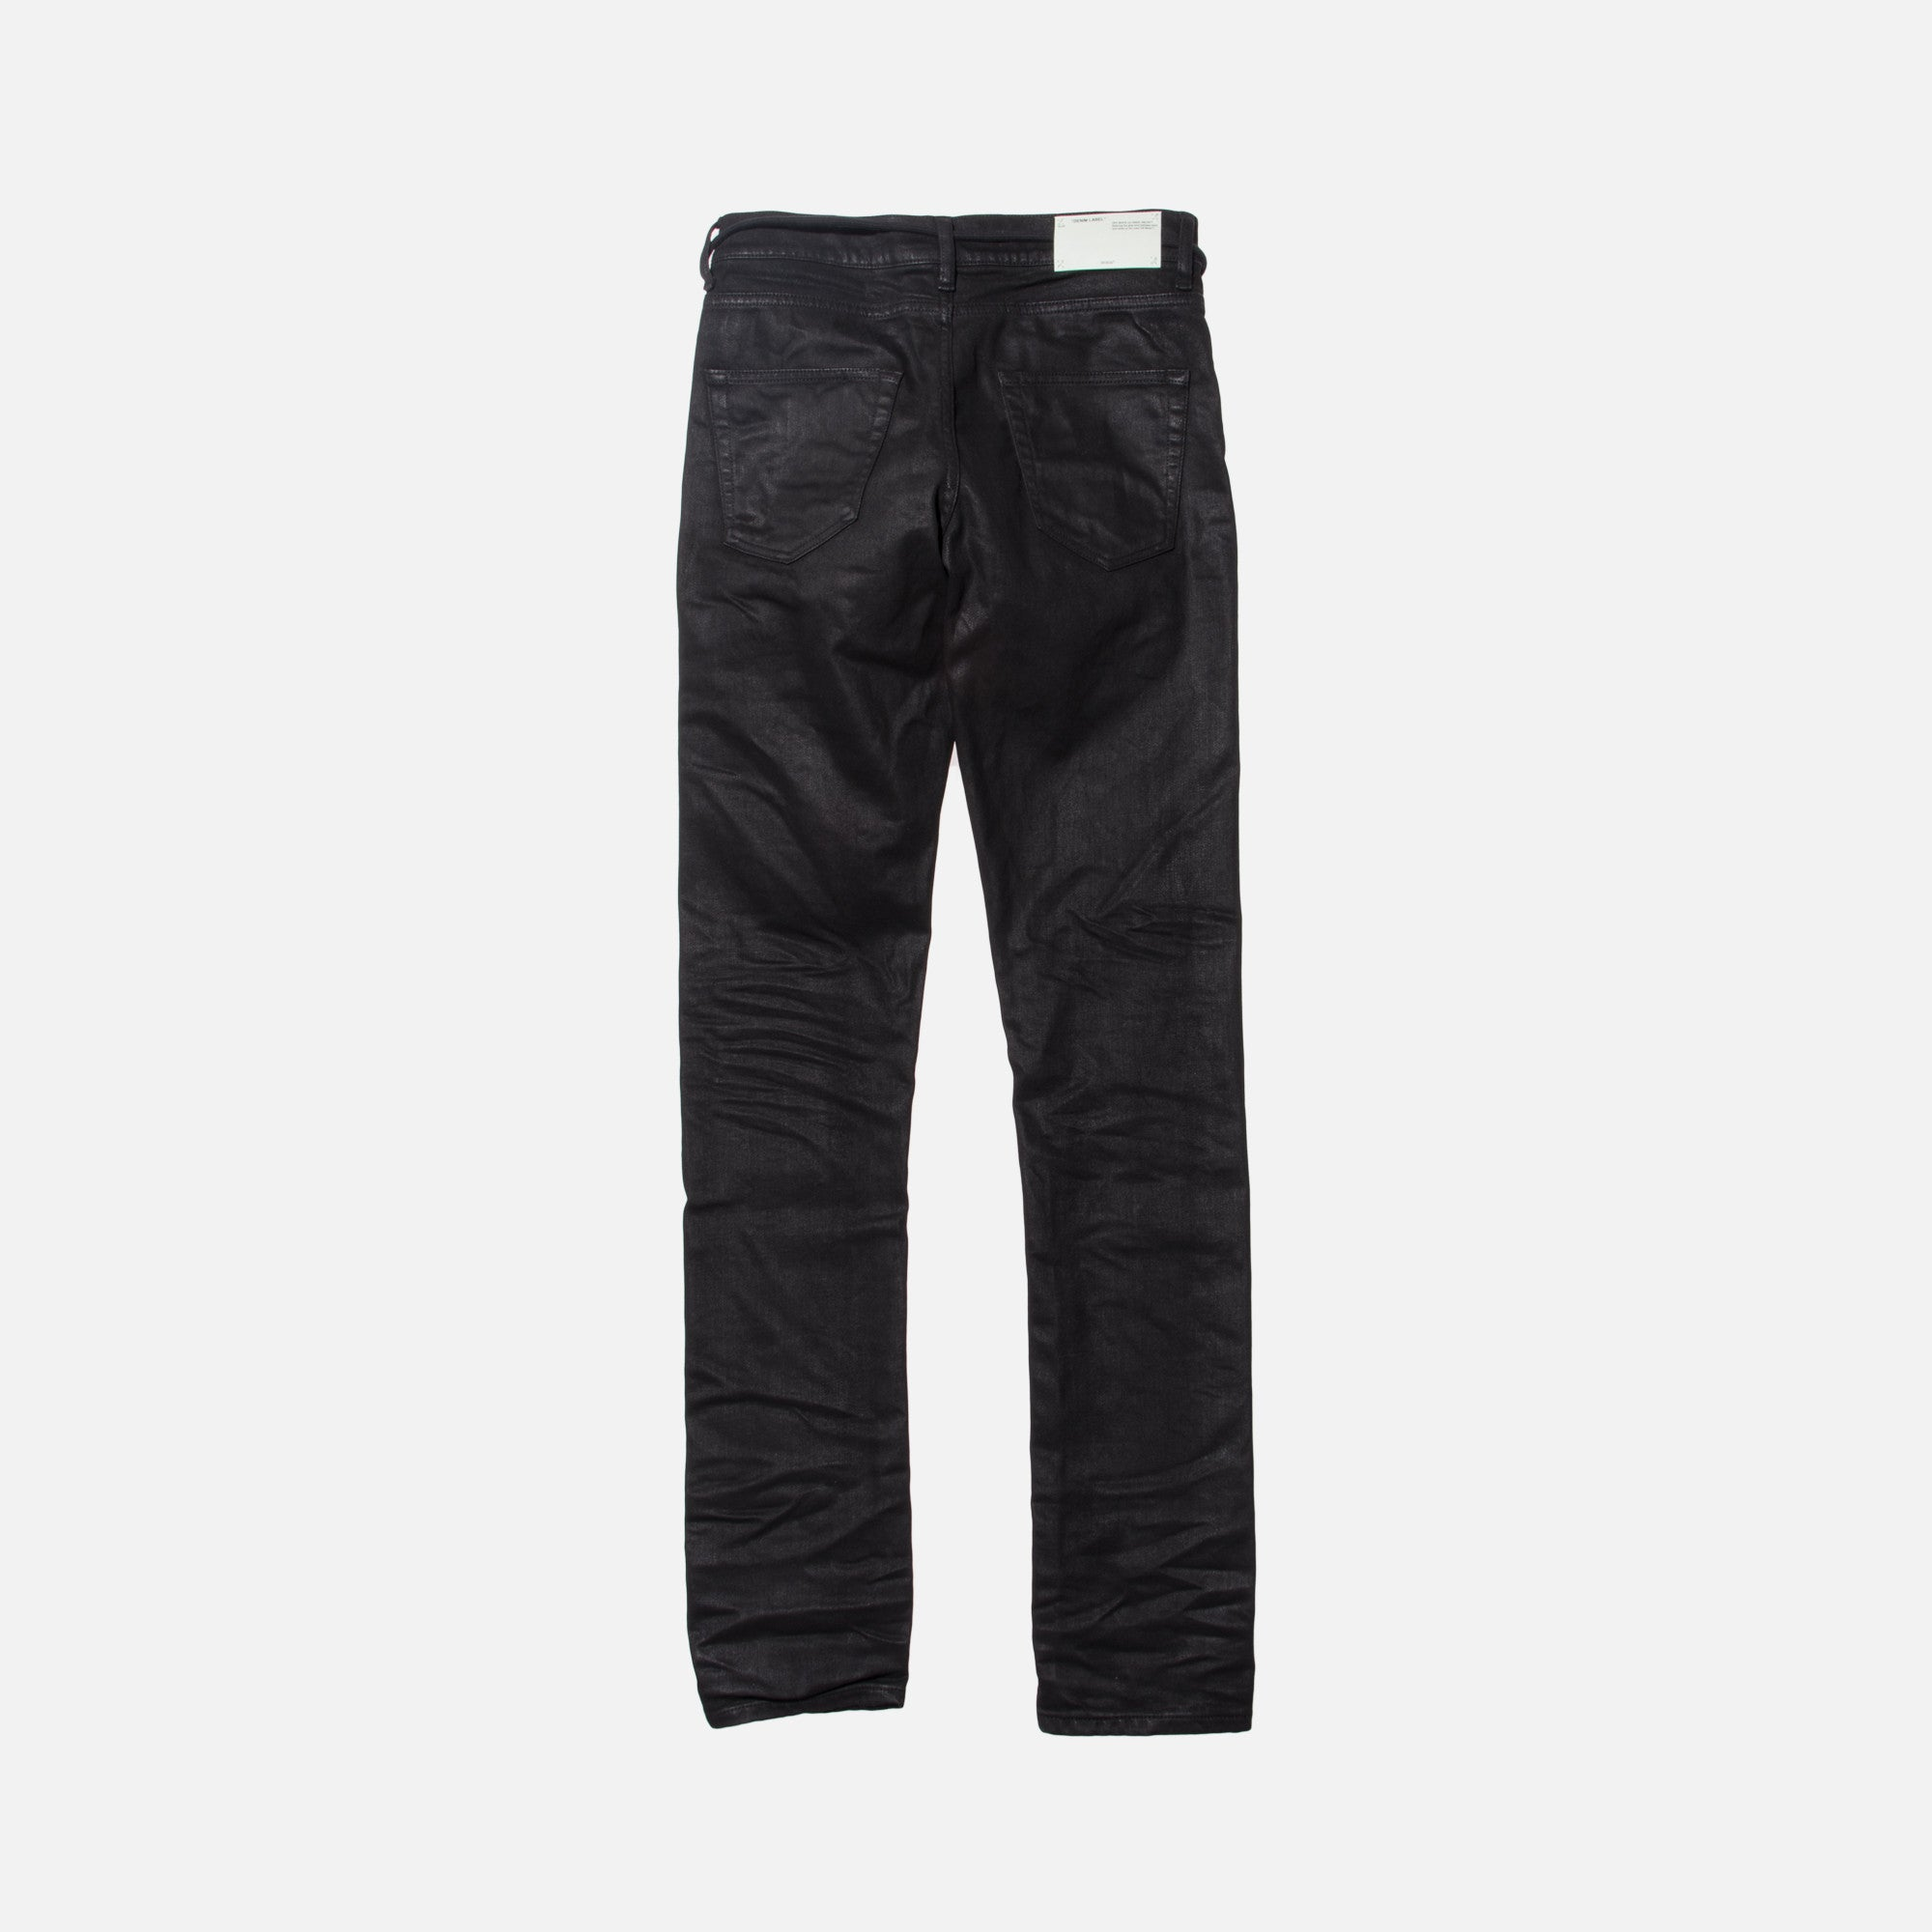 Off-White Mix Rock Slim Denim - Black / Multi